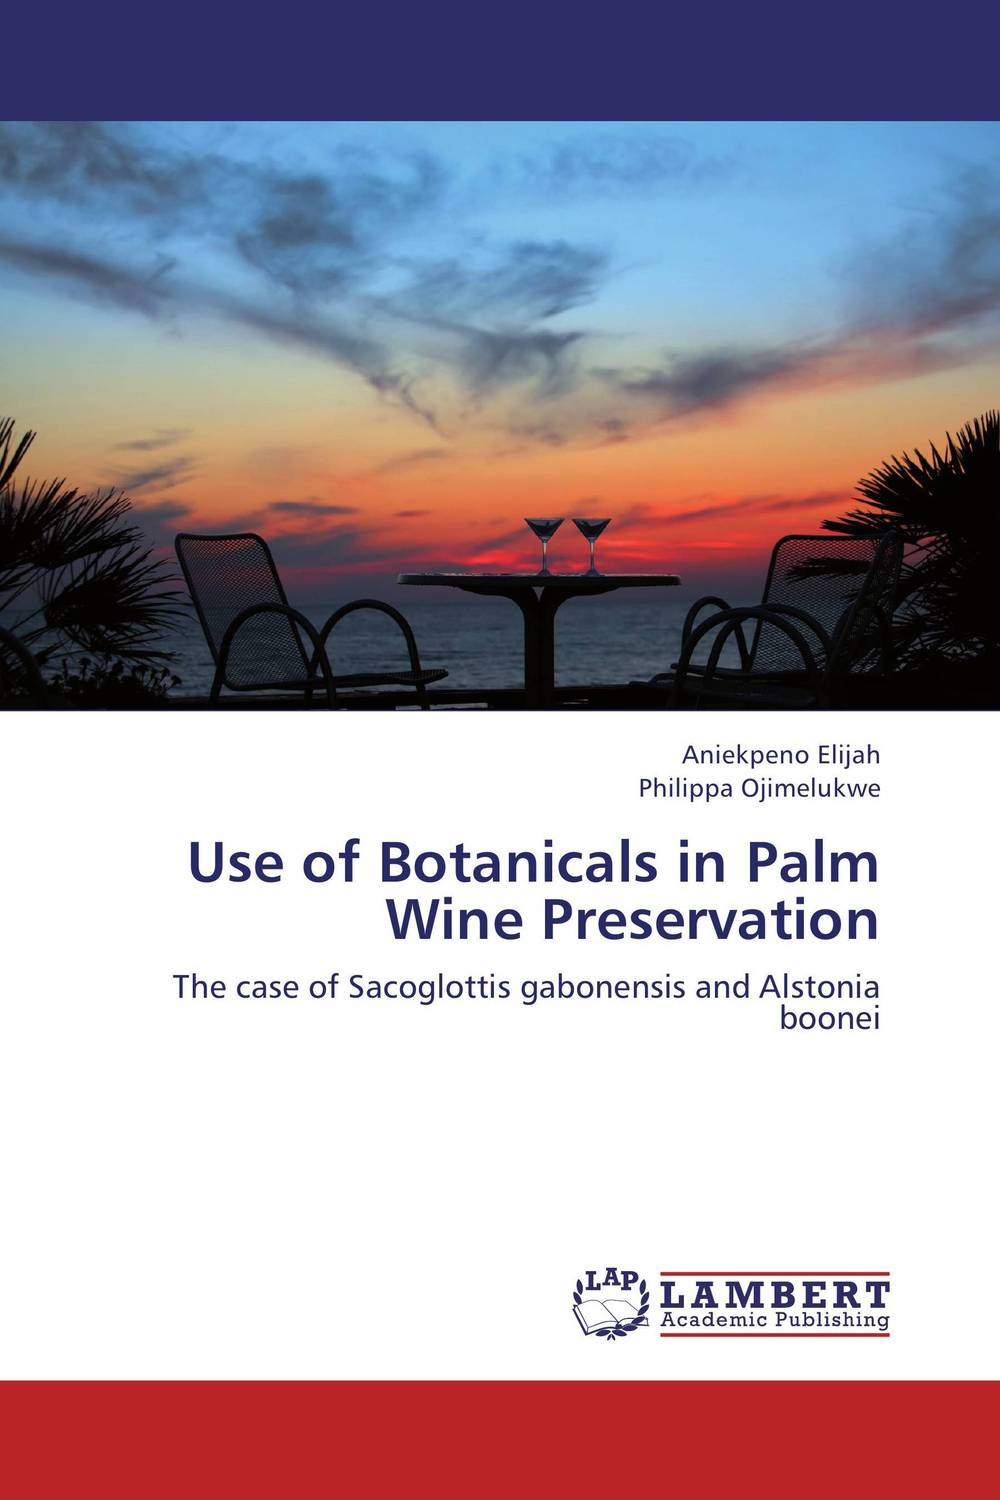 Use of Botanicals in Palm Wine Preservation